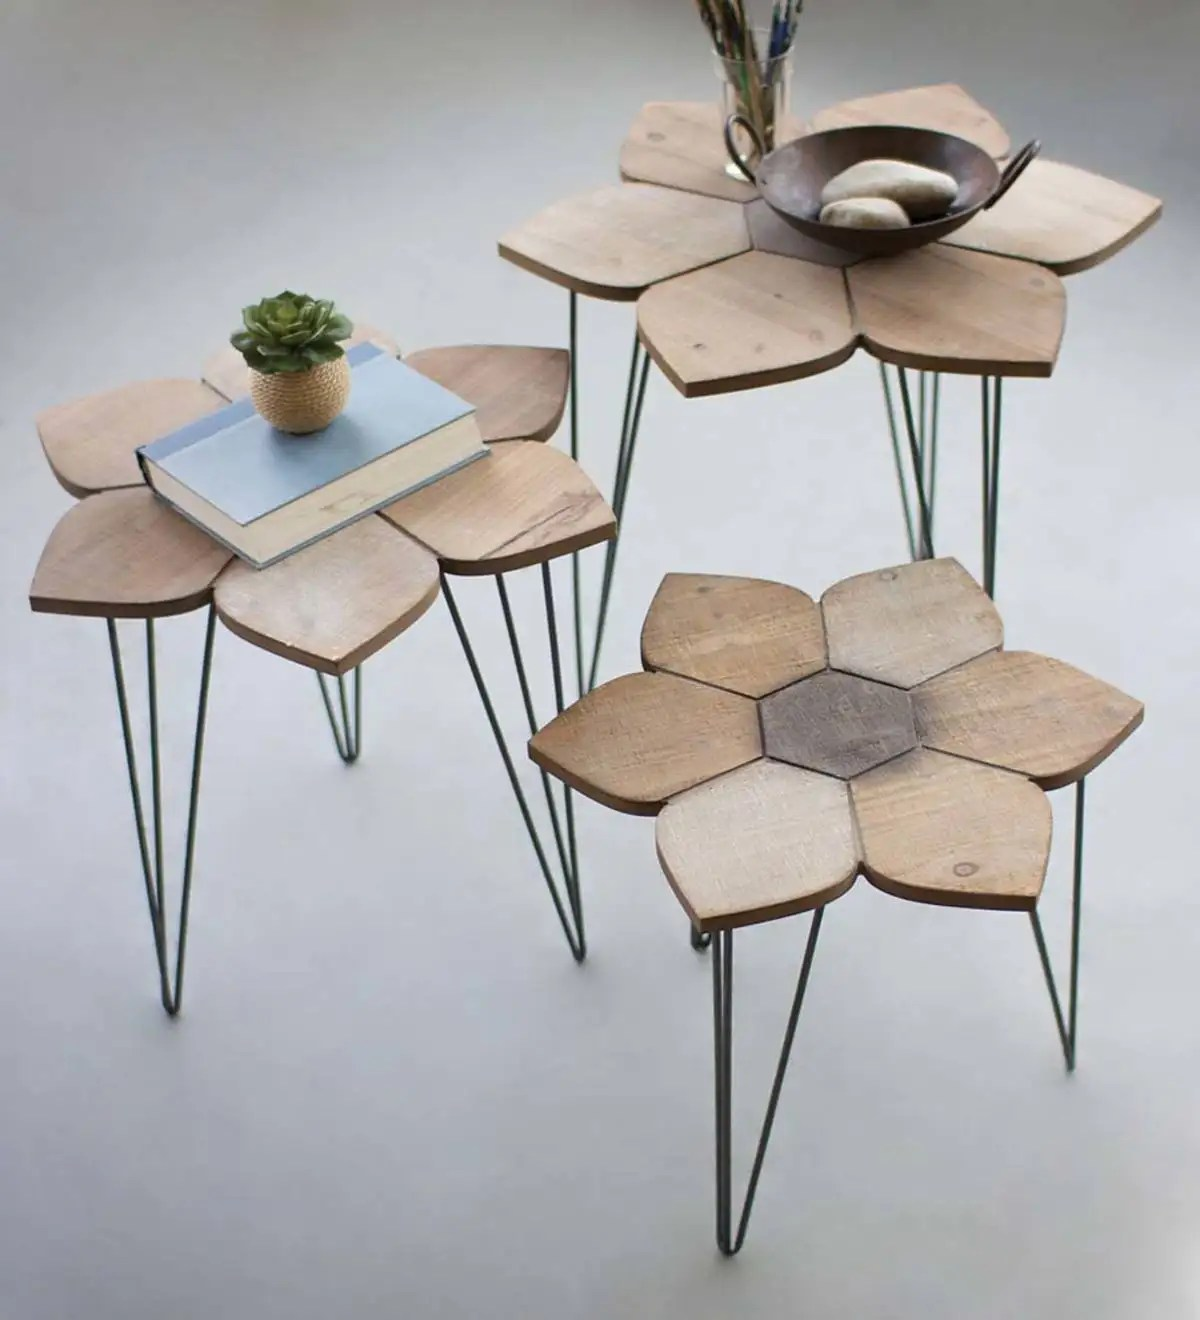 Wood Flower Top Nesting Tables Set Of 3 Plowhearth